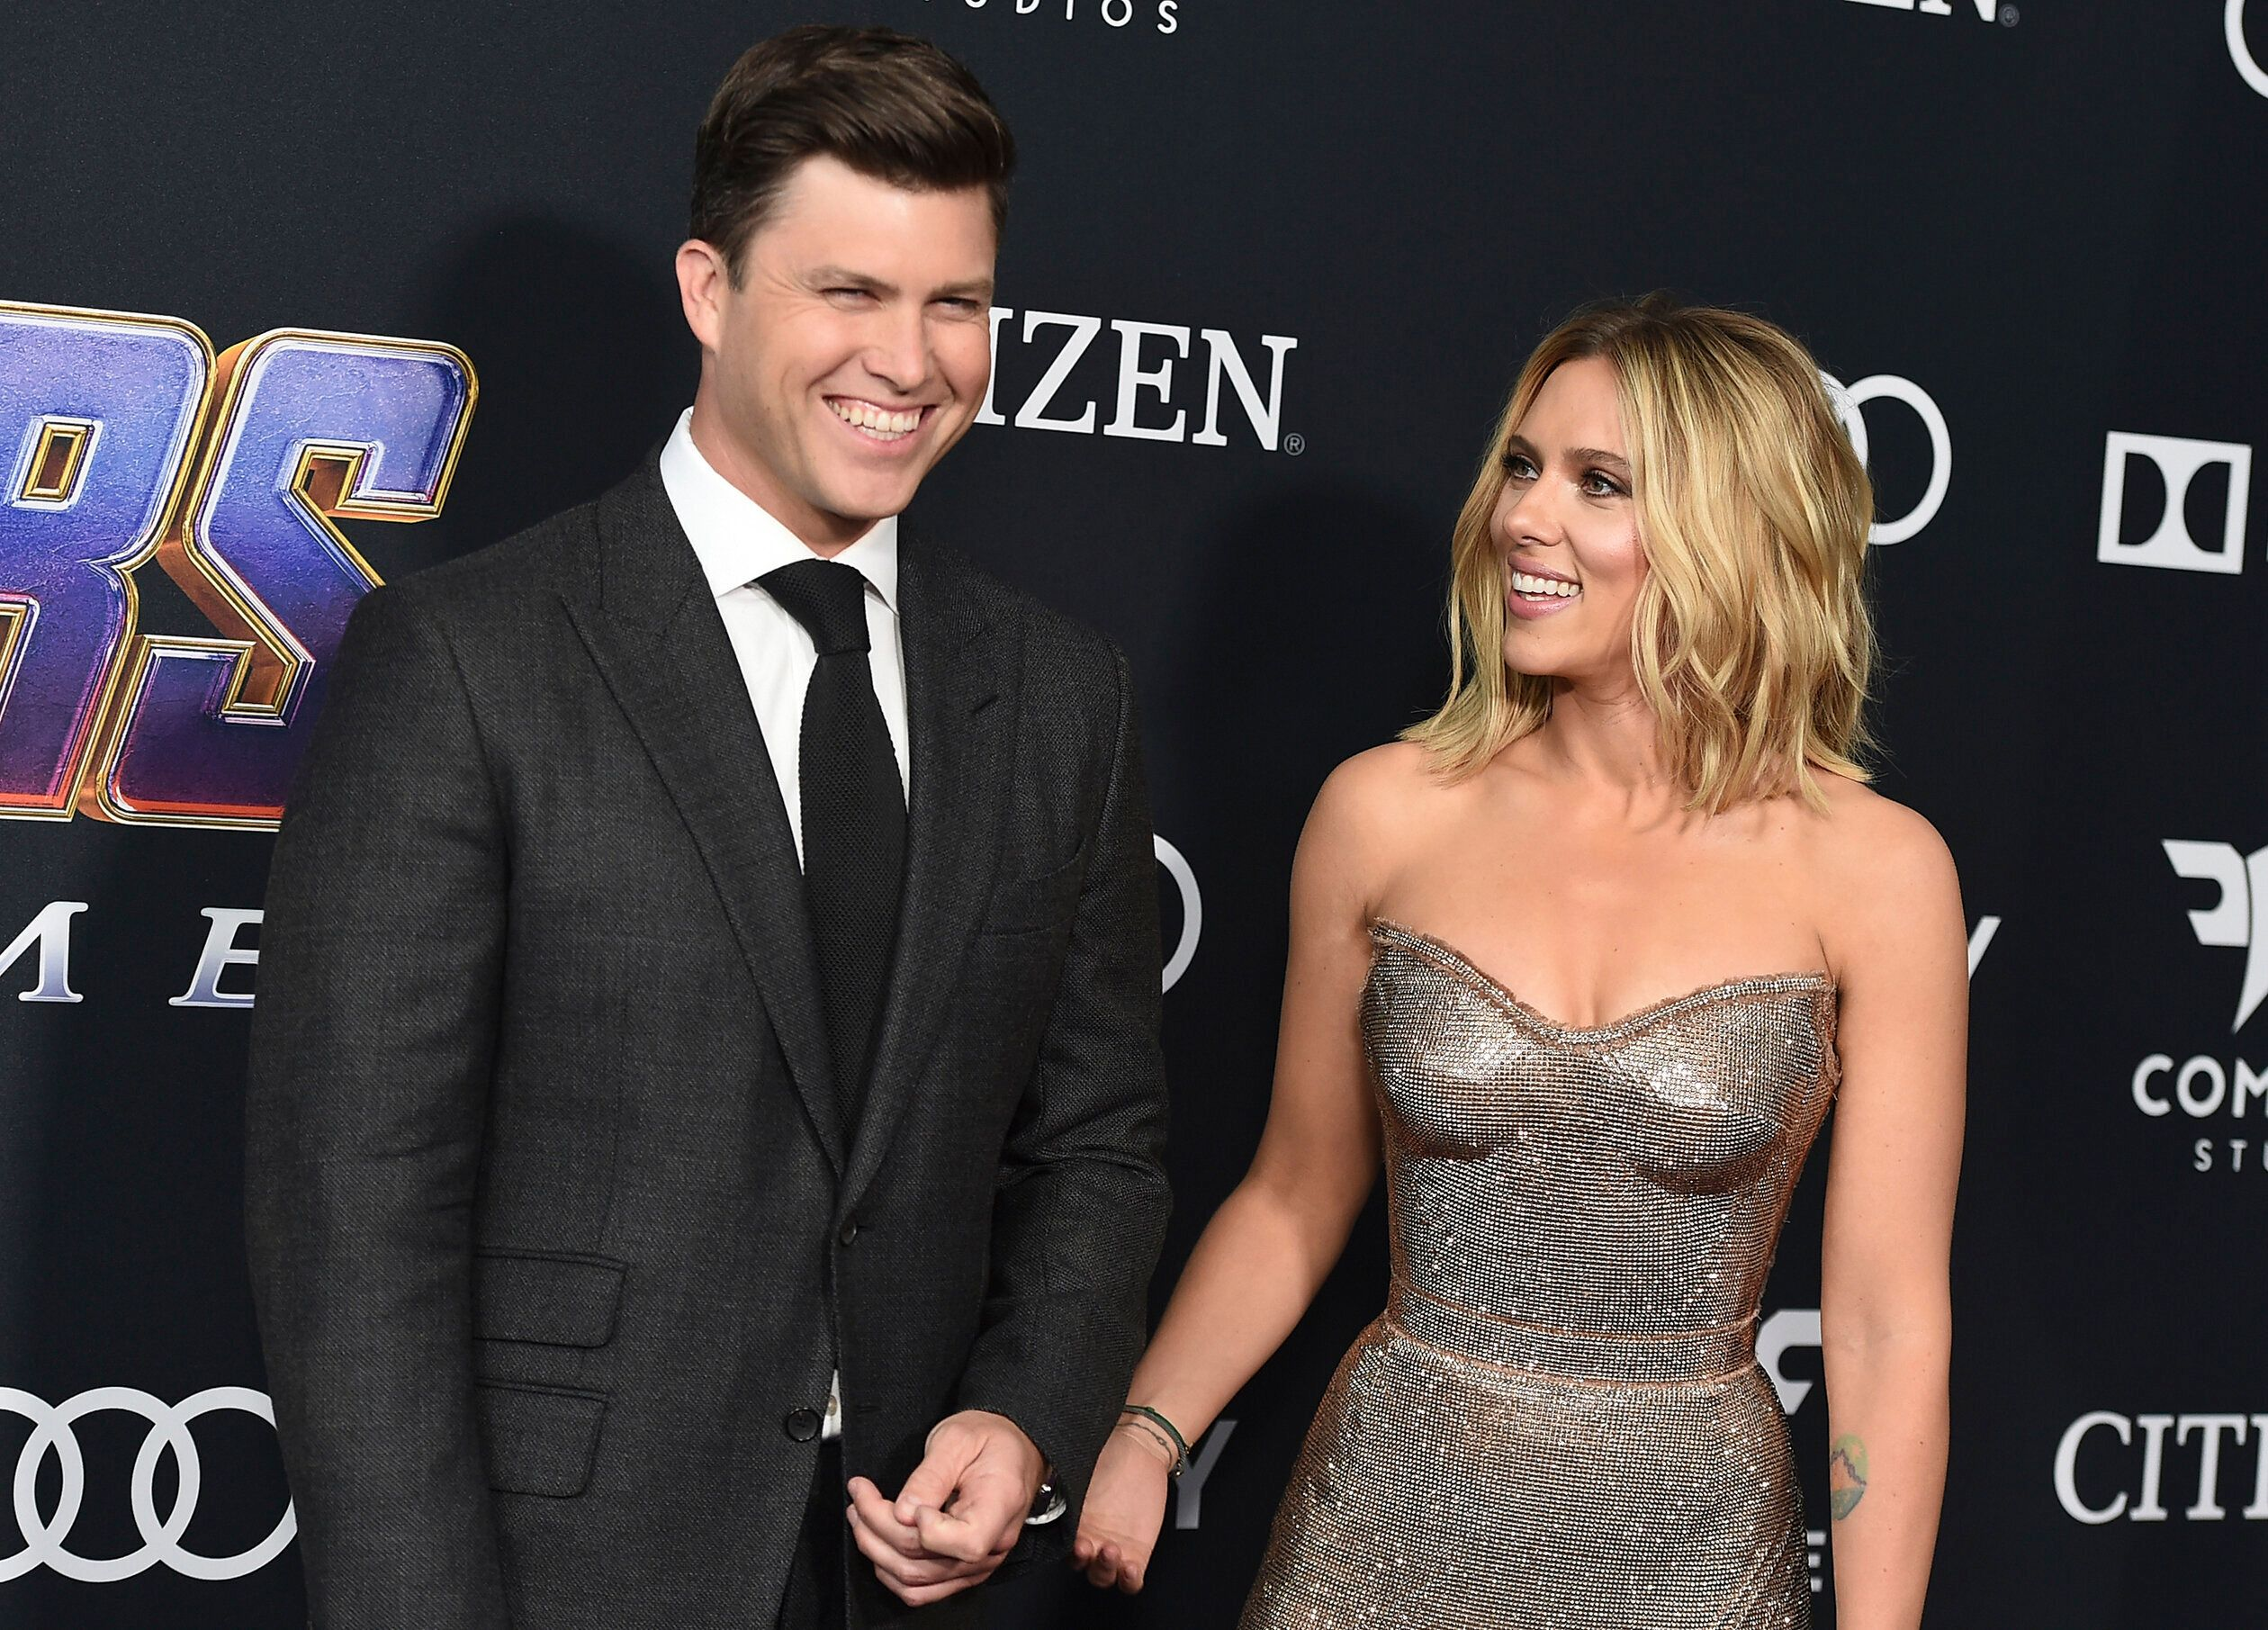 "FILE - In this April 22, 2019, file photo, Colin Jost, left, and Scarlett Johansson arrive at the premiere of ""Avengers: Endgame"" at the Los Angeles Convention Center. Wedding bells are in the future for actress Scarlett Johansson and Saturday Night Live's Colin Jost. Johansson's publicist Marcel Pariseau tells The Associated Press Sunday, May 19, 2019, that the private couple is officially engaged after two years of dating. Pariseau says no date has been set for the nuptials. (Photo by Jordan Strauss/Invision/AP, File)"